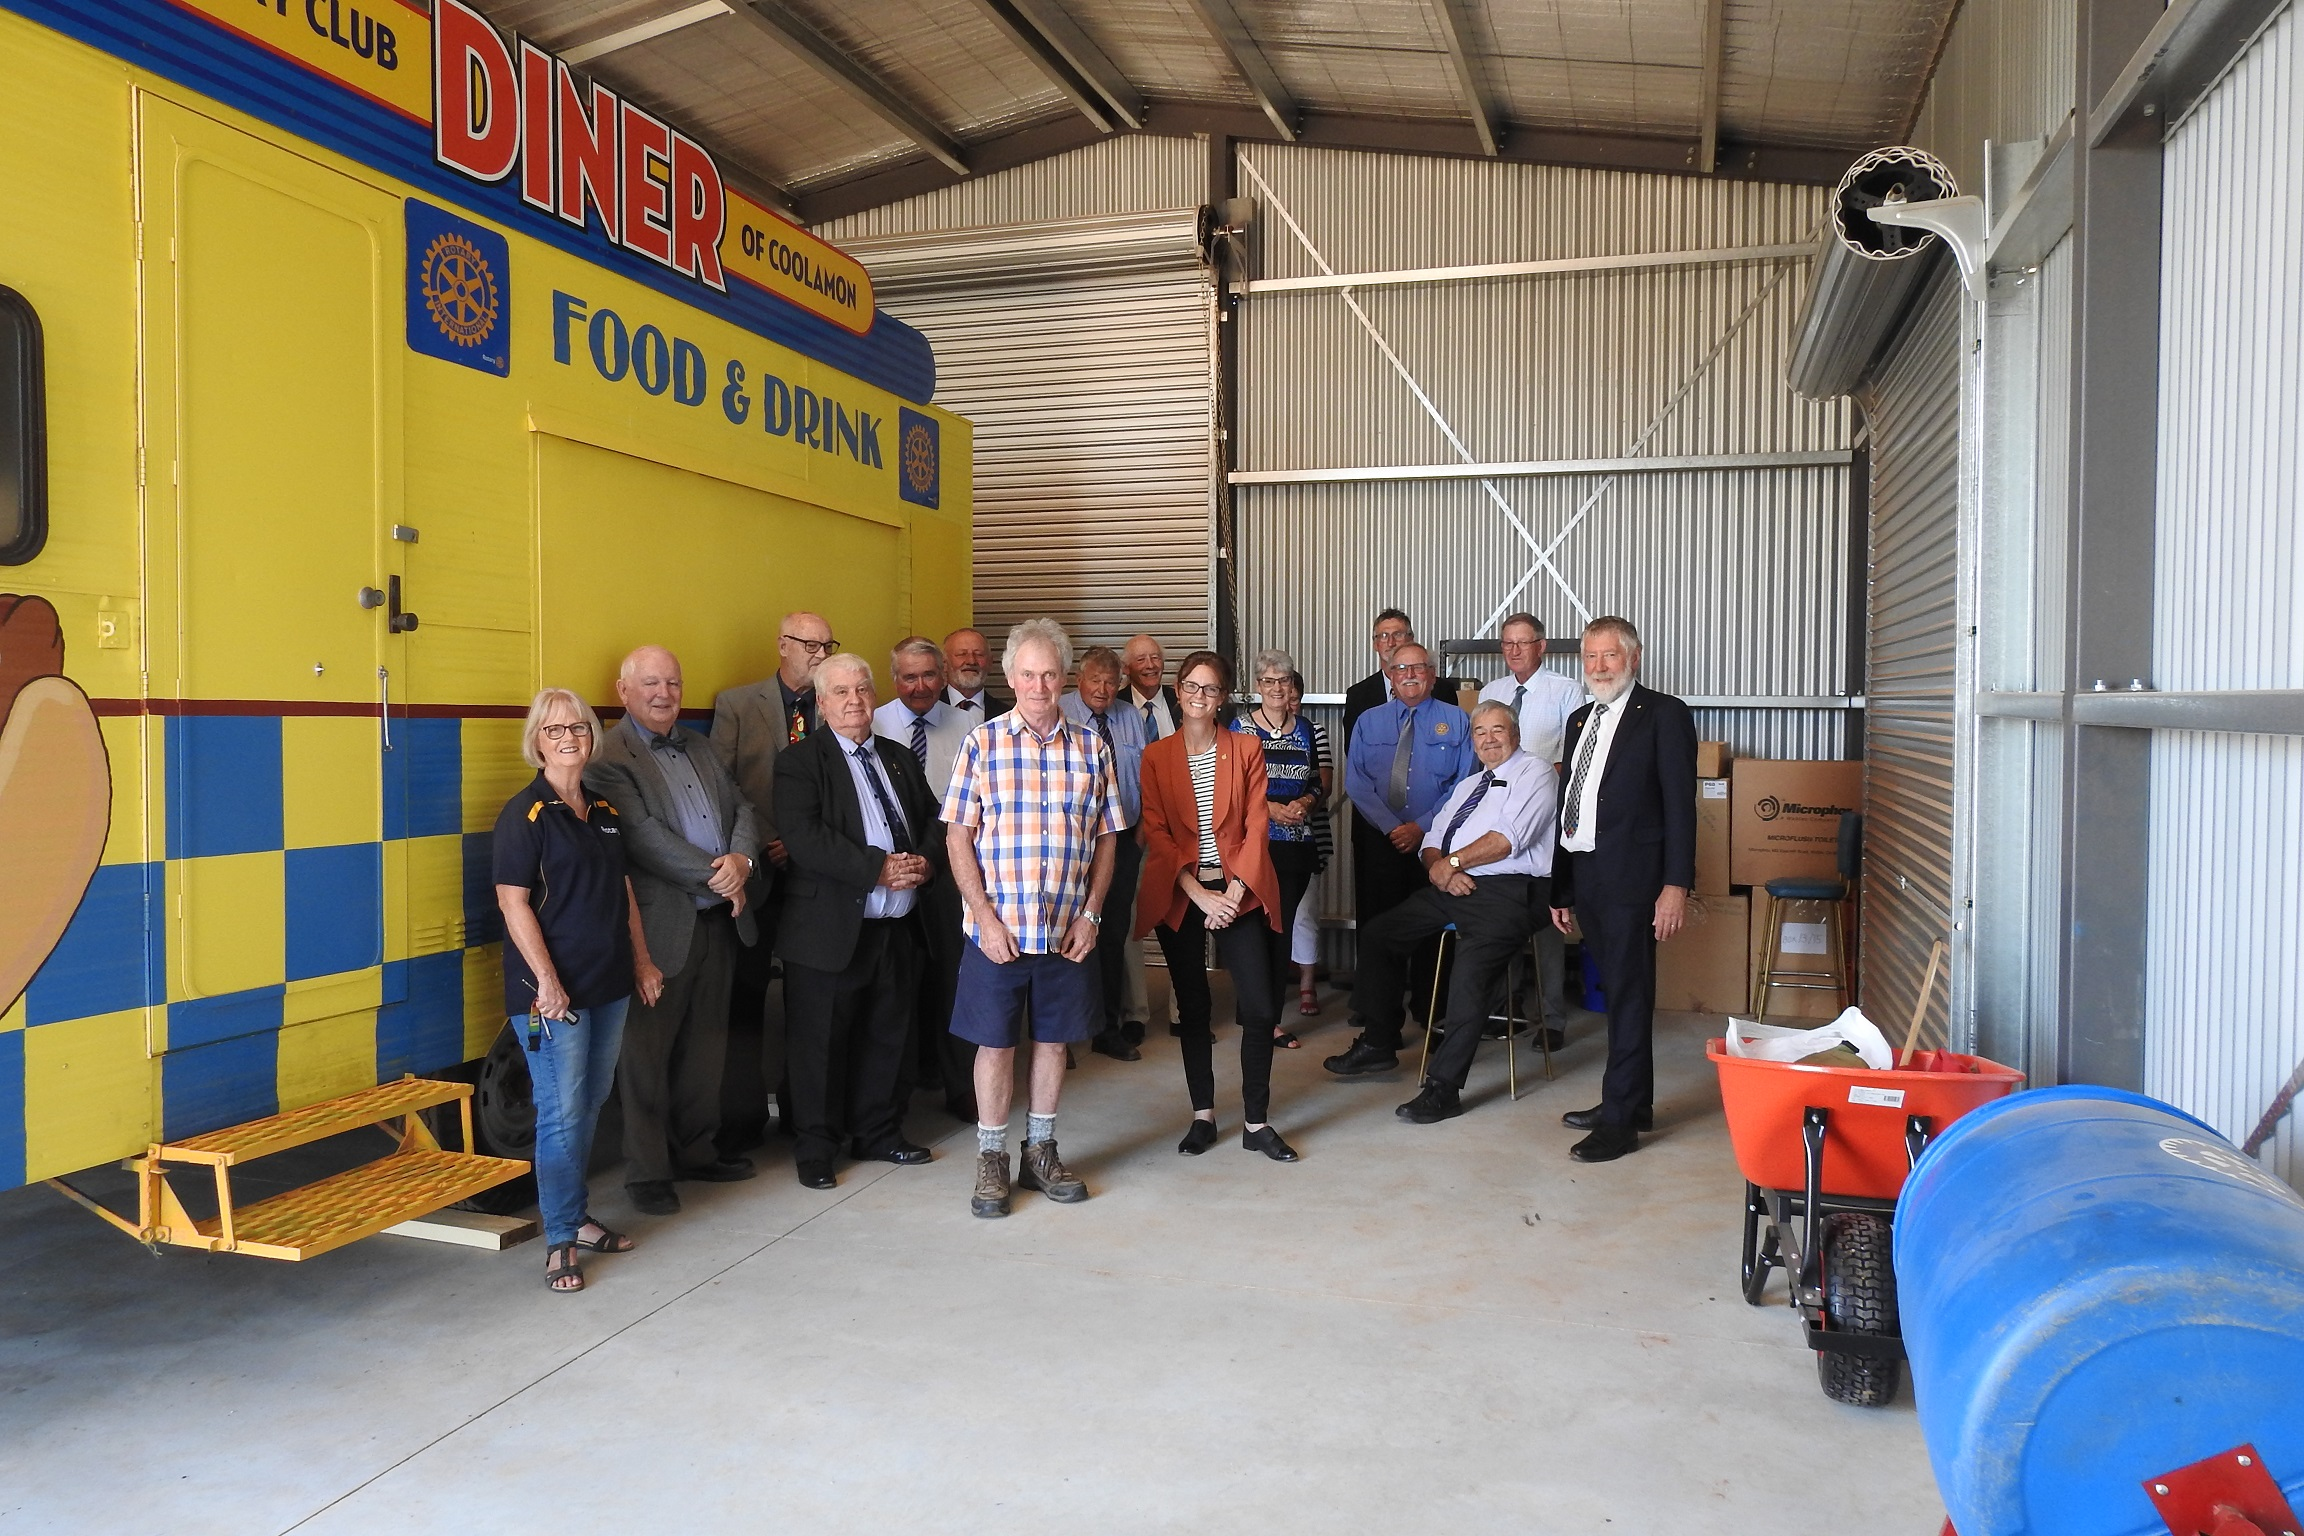 Steph Cooke and members of the Coolamon Rotary Club stand in a large shed next to a bright yellow and blue food van.